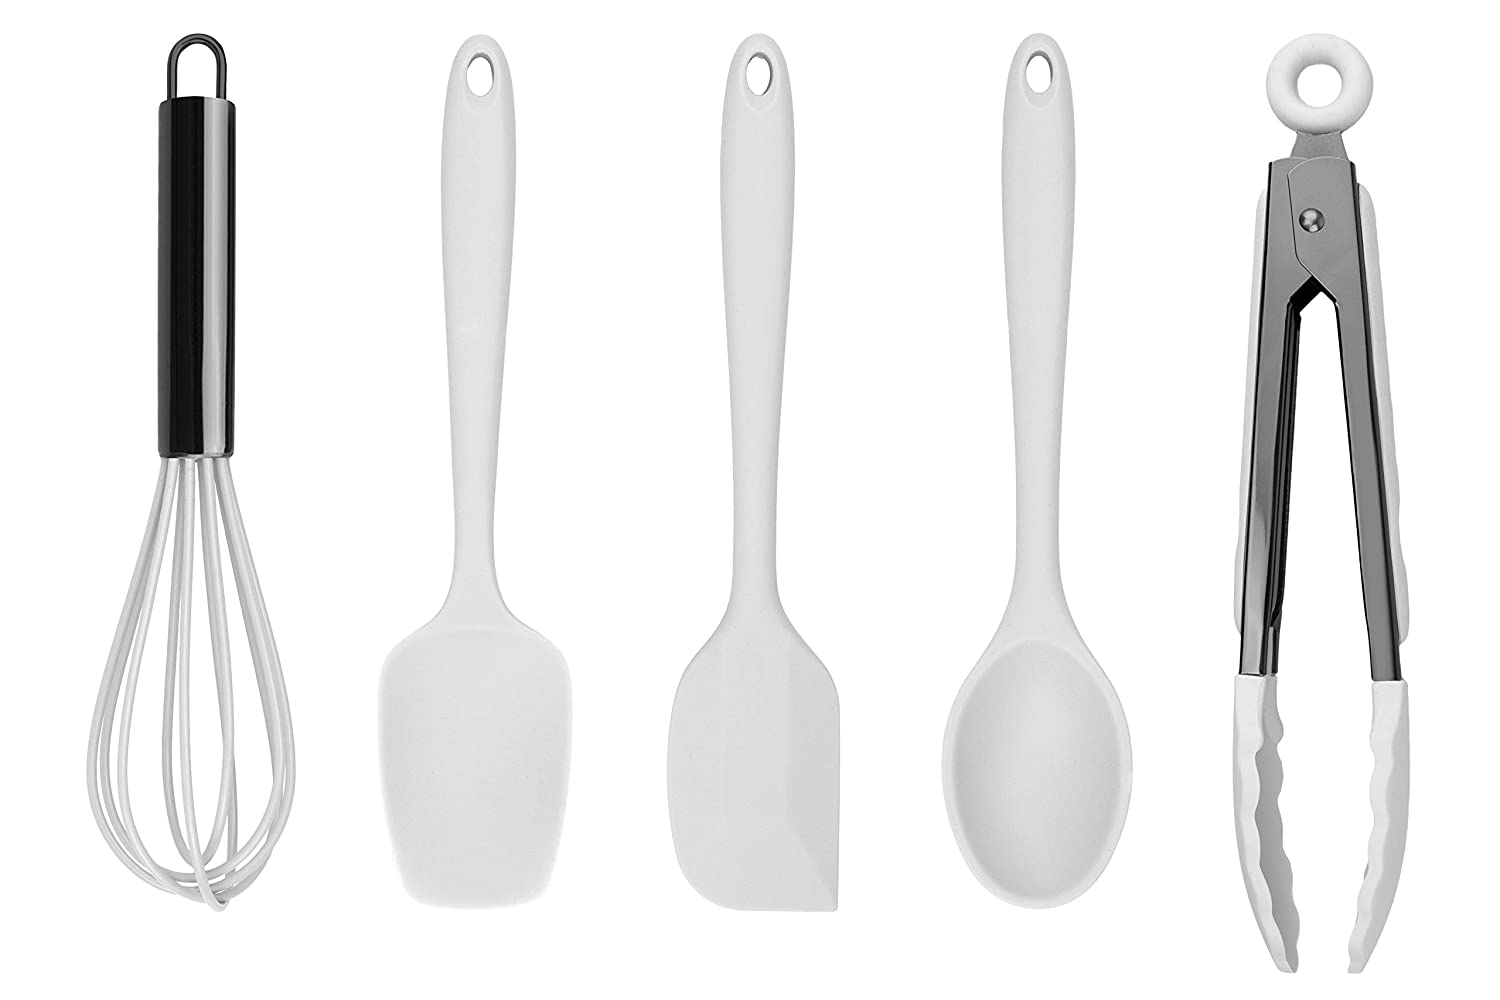 Country Kitchen Set of Five White and Gunmetal Silicone MINI Kitchen Utensil Set